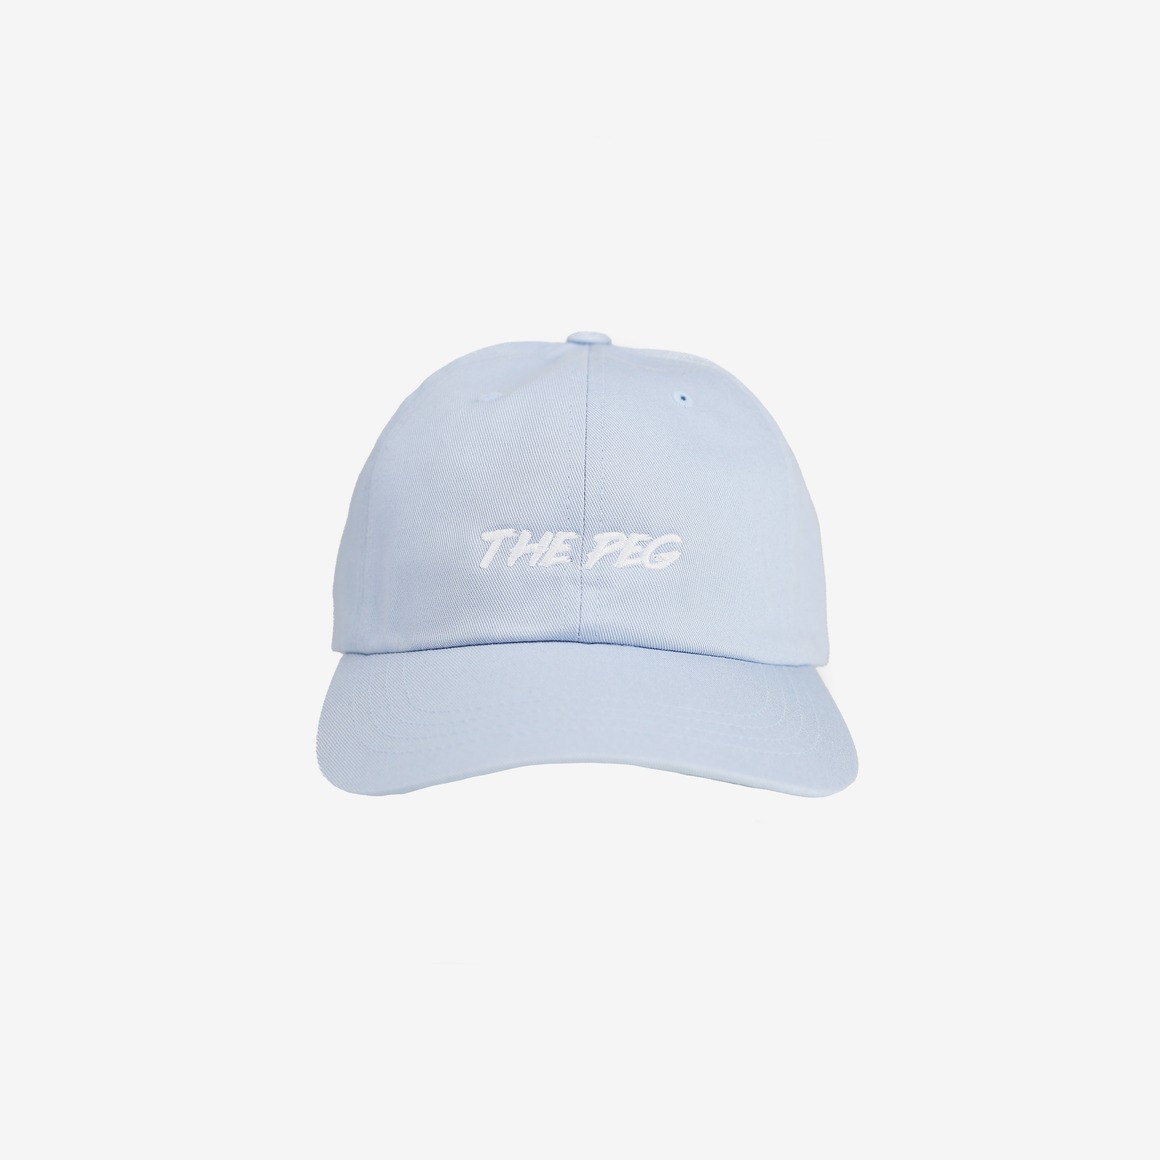 Paintbrush Dad Cap (Periwinkle/White)